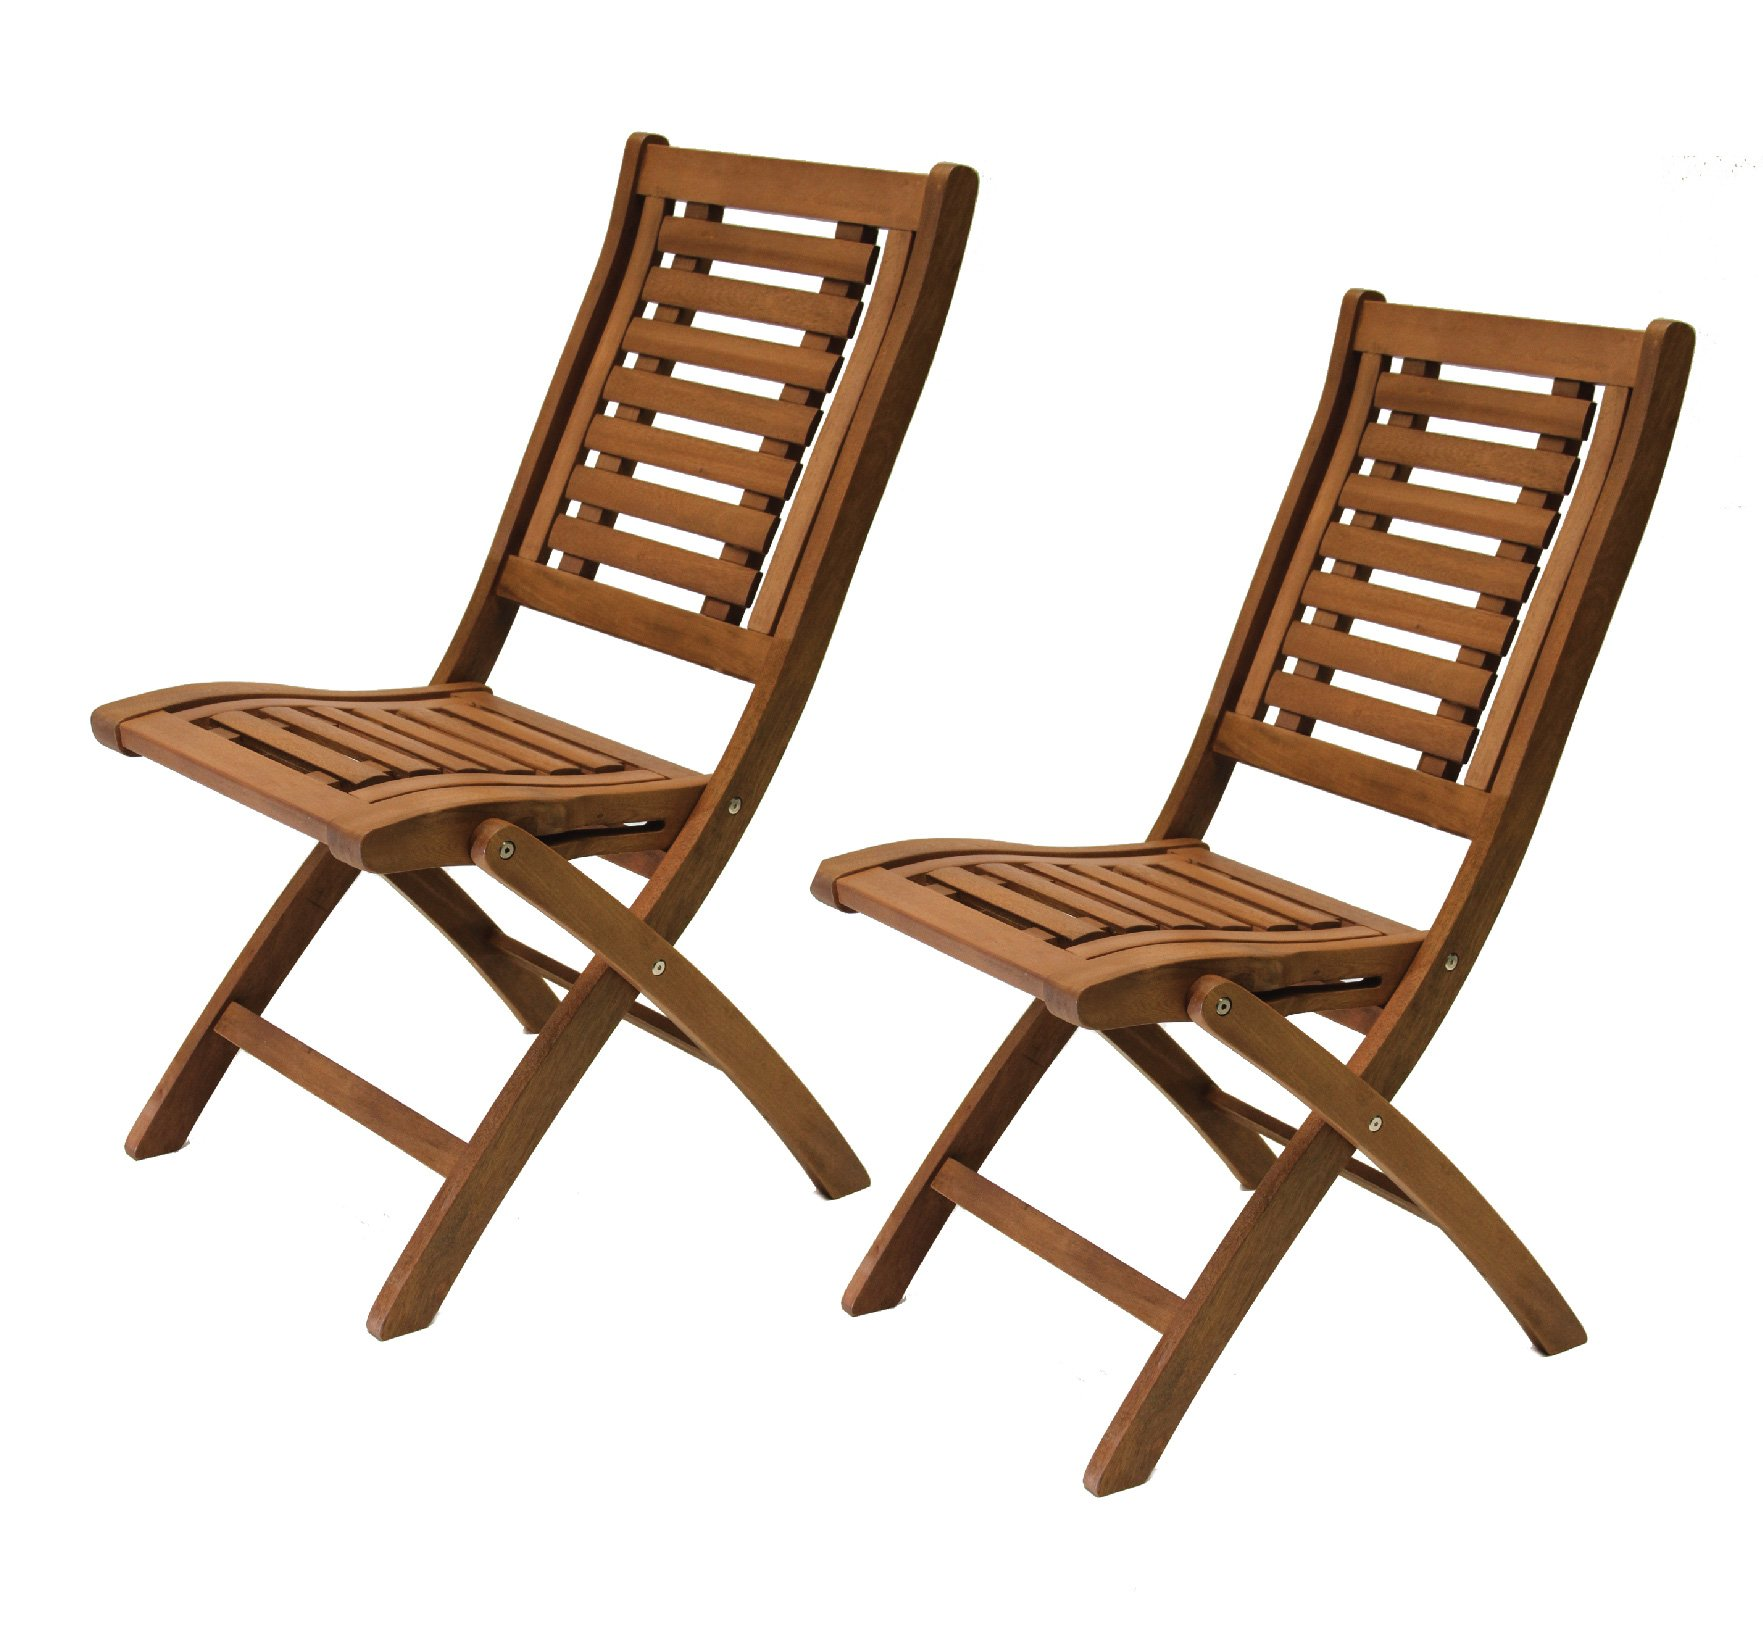 Folding Eucalyptus Side Chair Fully Assembled, 2 pack by Outdoor Interiors